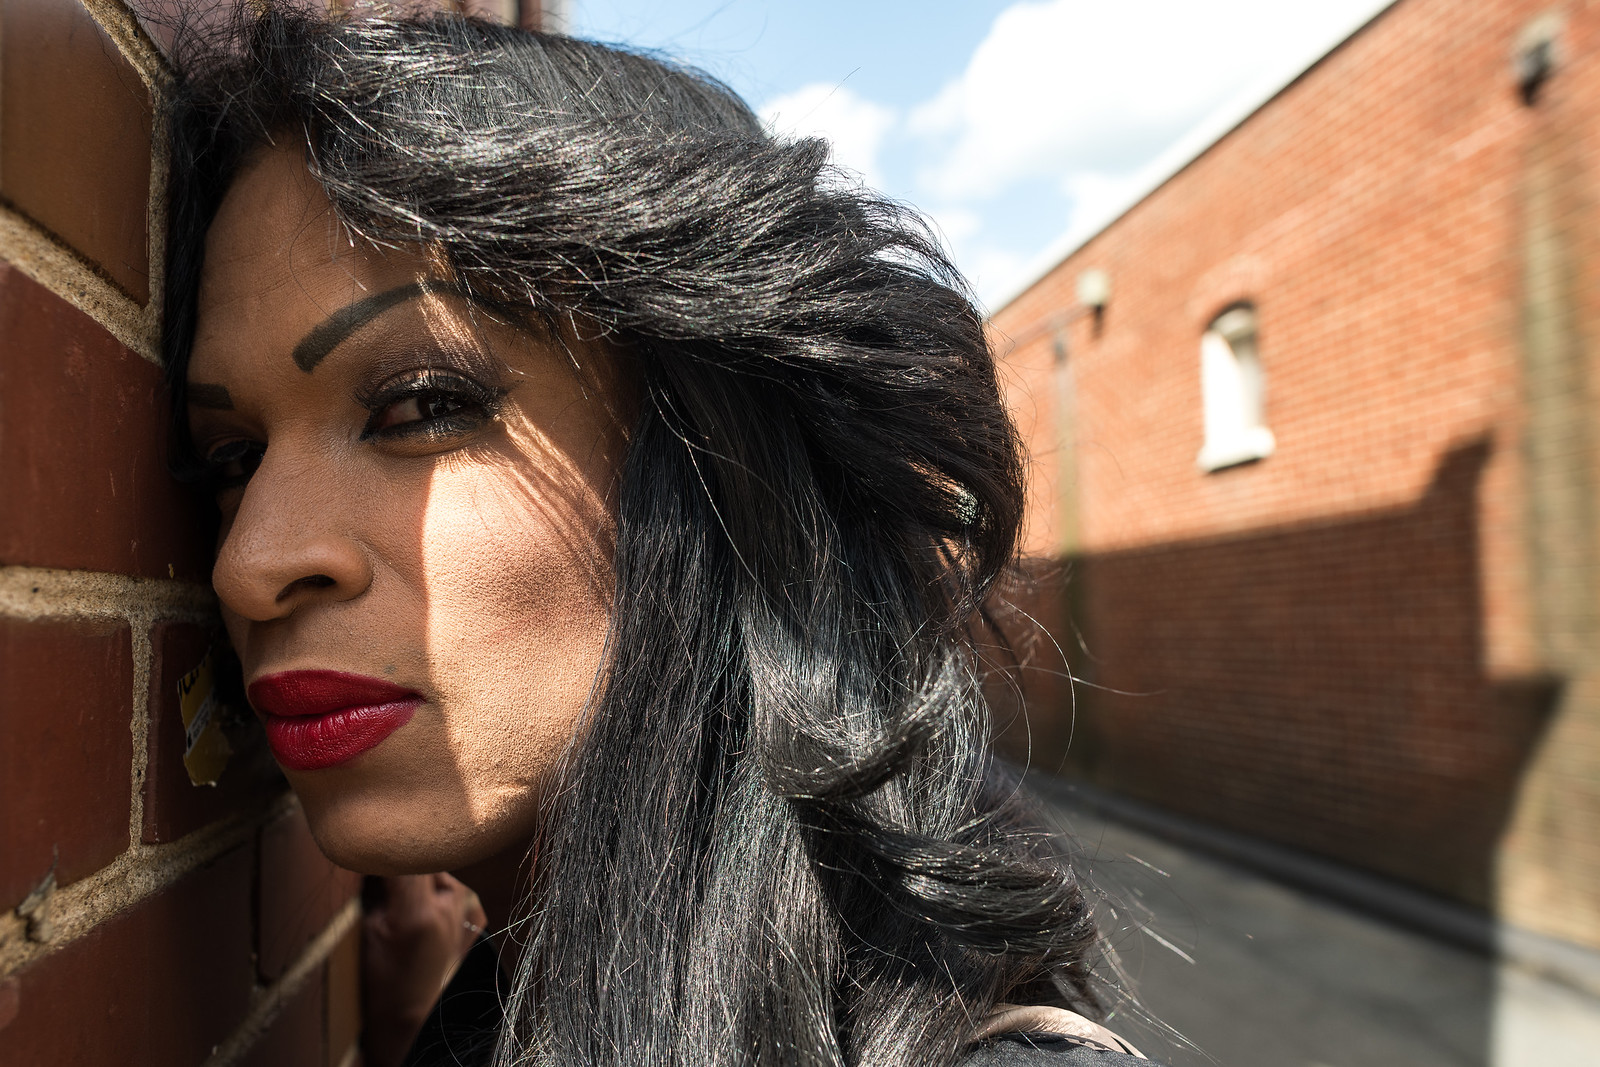 The Horrific Untold Story of Trans ICE Detention | NewBlackMan (in